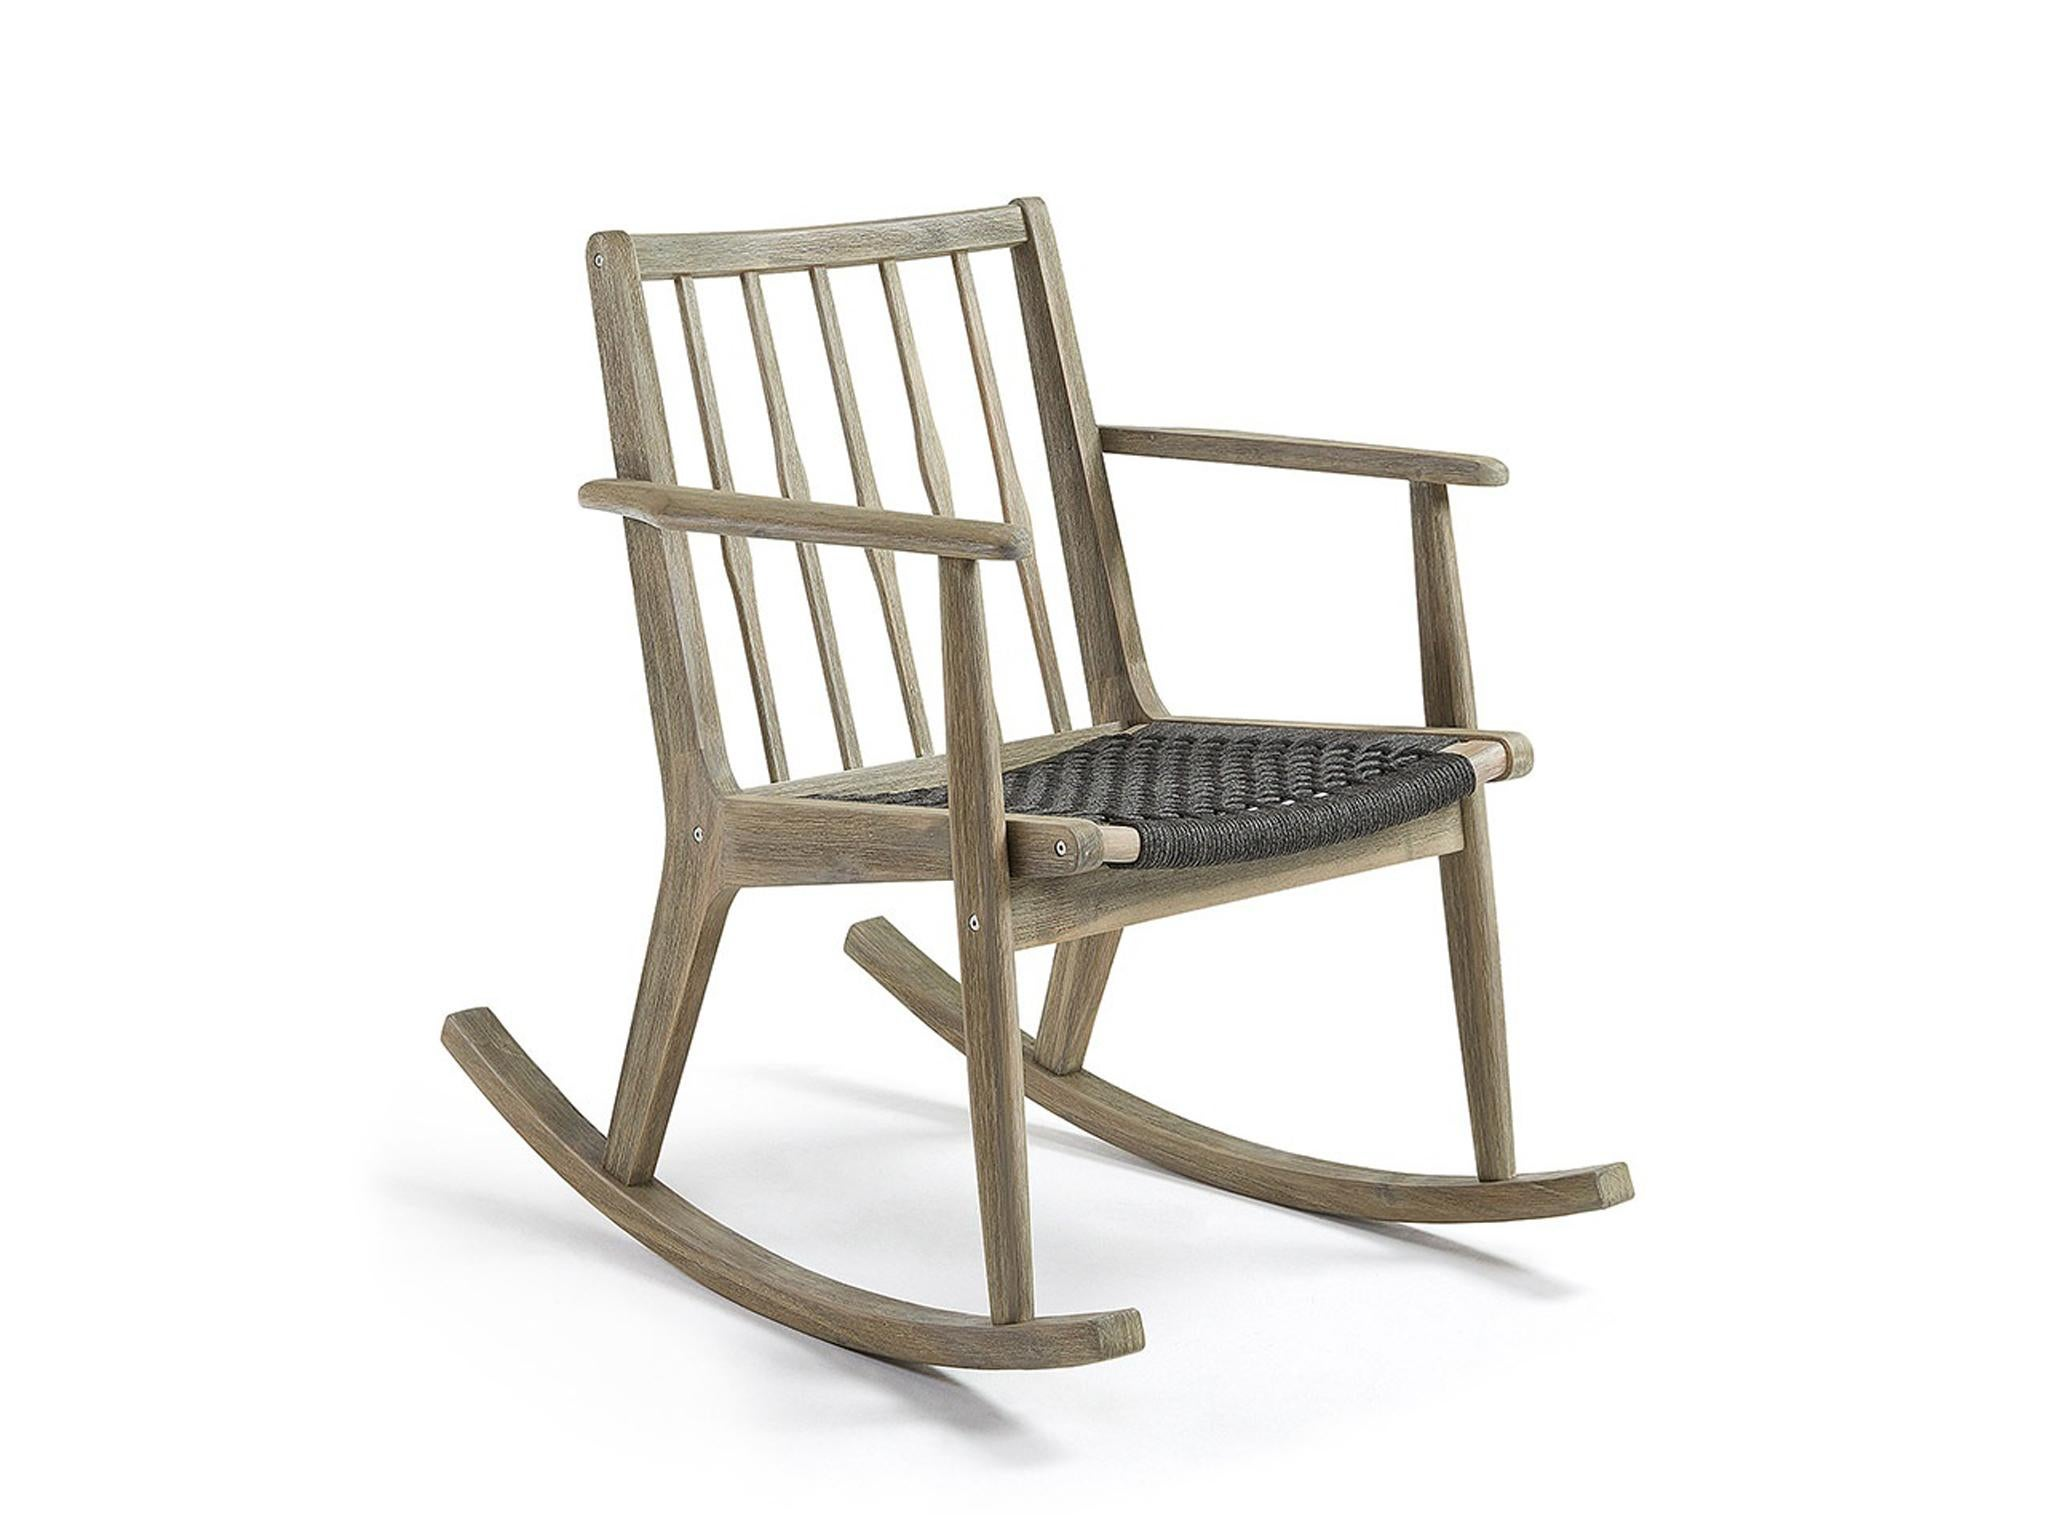 Rocking Chairs Can Take Up A Lot Of Space. This Compact Piece From  Cuckooland Is A Good Solution For Smaller Living Rooms, Or For Use In The  Bedroom Or ...